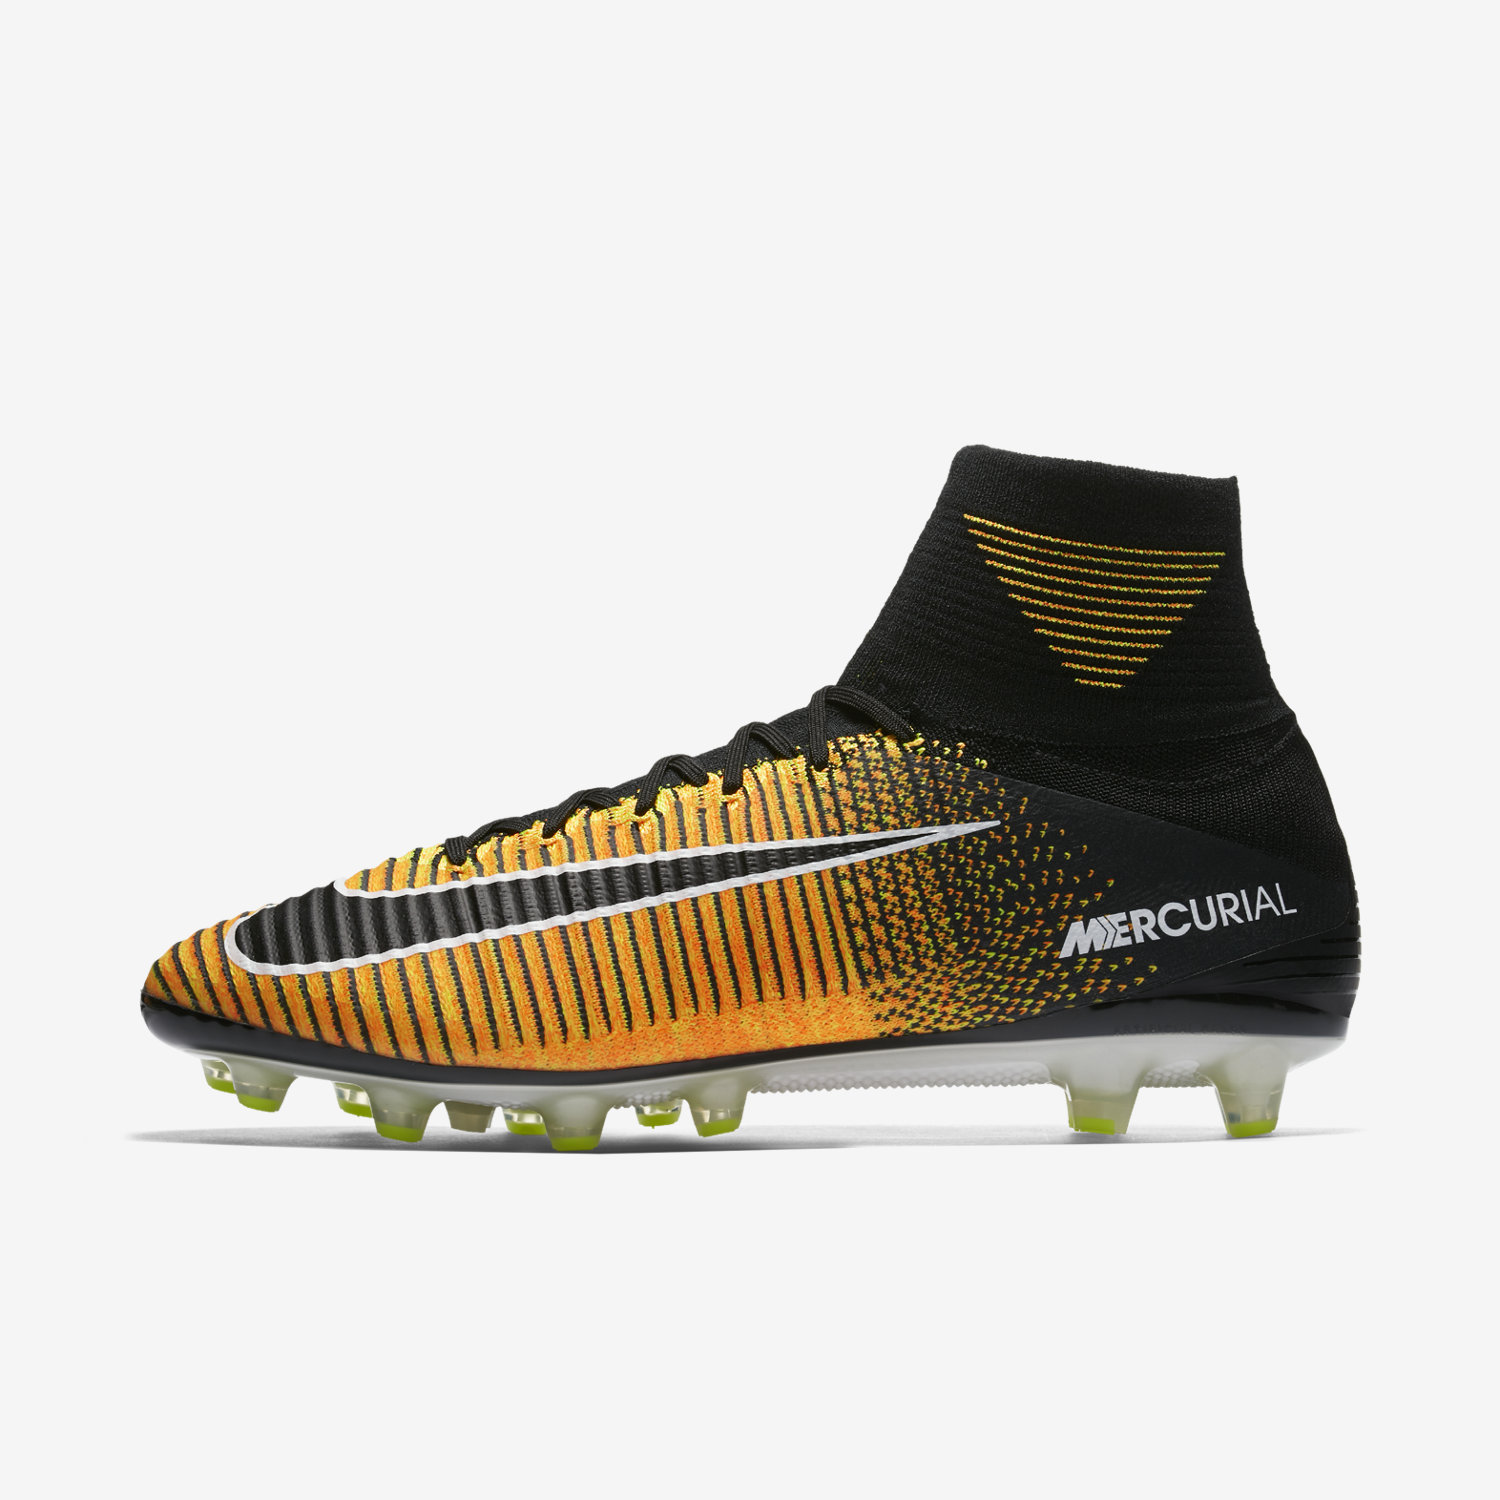 $10 Off Overnight Shipping From cemedomino.ml Shop for all your soccer equipment and apparel needs from cemedomino.ml including soccer shoes, replica soccer jerseys, soccer .